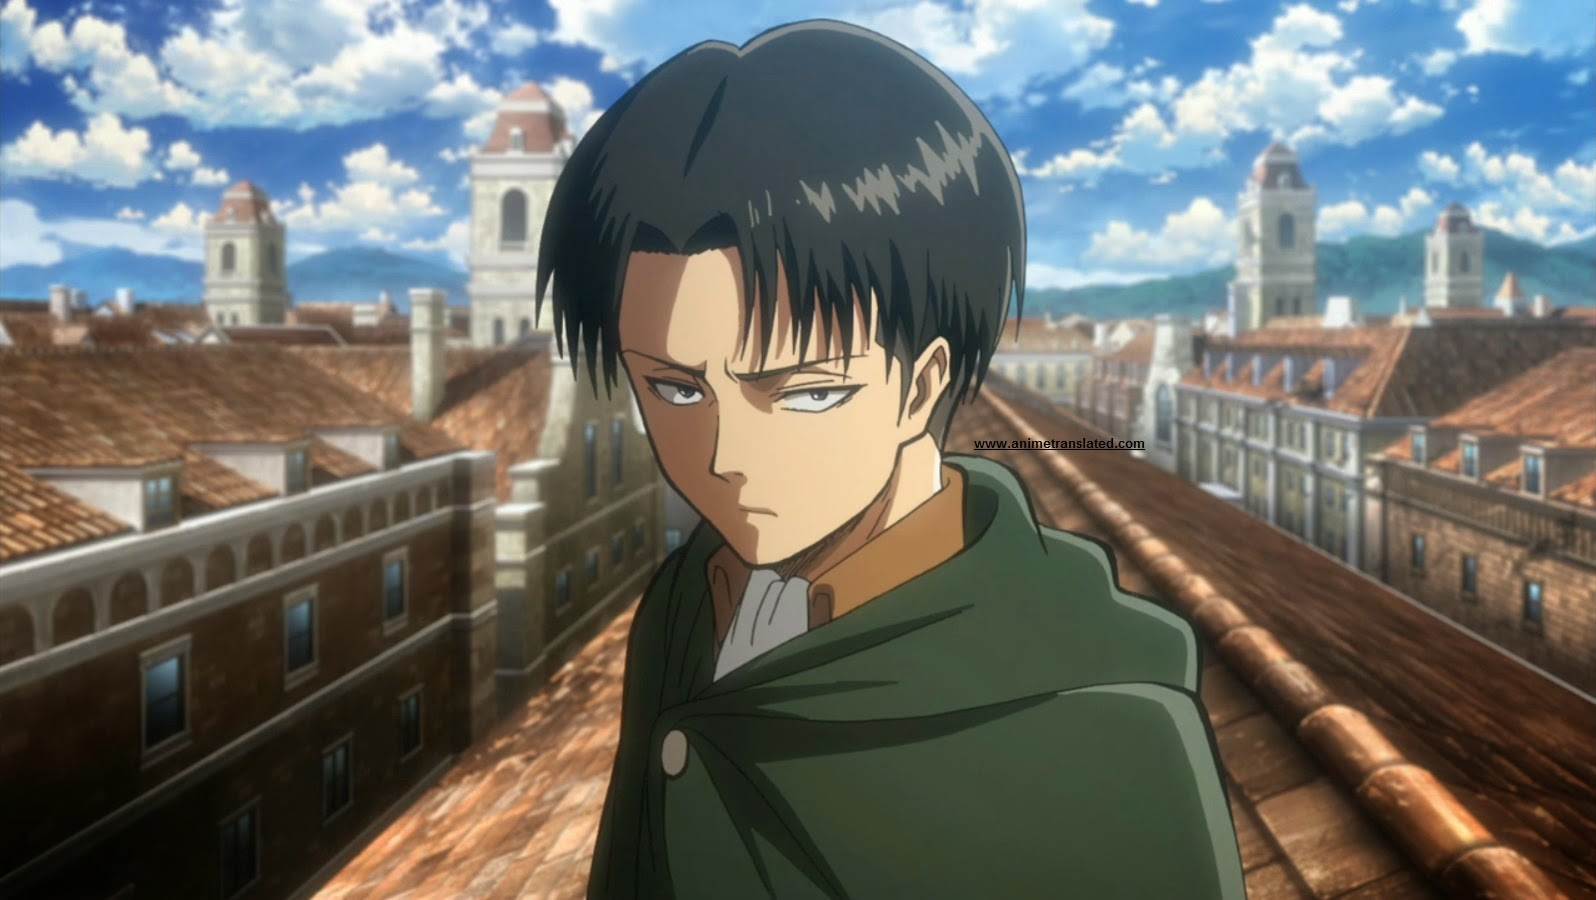 الأوفا الرابعة من أنمي الهجوم على العمالقة Shingeki no kyojin ova4 مترجمة عربي,shingeki-no-kyojin shingeki-no-kyojin manga shingeki-no-kyojin-ilse-no-techou shingeki-no-kyojin-kuinaki-sentaku shingeki-no-kyojin wiki shingeki-no-kyojin 63 shingeki-no-kyojin season 2 shingeki-no-kyojin episode 26 shingeki-no-kyojin-before-the-fall shingeki-no-kyojin-episode-19 shingeki-no-kyojin manga shingeki-no-kyojin wiki shingeki-no-kyojin 63 shingeki-no-kyojin season 2 shingeki-no-kyojin episode 26 shingeki-no-kyojin online shingeki-no-kyojin watch online shingeki-no-kyojin anime shingeki-no-kyojin episodes shingeki-no-kyojin 60 shingeki-no-kyojin anime shingeki no kyojin annie shingeki no kyojin anime freak shingeki no kyojin anime download shingeki no kyojin animeultima shingeki no kyojin animeseason shingeki no kyojin armored titan shingeki no kyojin anime episode 1 shingeki no kyojin anime watch shingeki no kyojin anime44 a shingeki no kyojin fanfic a shingeki no kyojin jugar a shingeki no kyojin assistir a shingeki no kyojin shingeki no kyojin before the fall shingeki no kyojin baka shingeki no kyojin batoto shingeki no kyojin bertholdt shingeki no kyojin bakabt shingeki no kyojin blu ray shingeki no kyojin birth of levi shingeki no kyojin browser game shingeki no kyojin blog shingeki no kyojin before the fall english b.a.p shingeki no kyojin shingeki b no kyojin /b manga shingeki no kyojin b.indo shingeki-no-kyojin chapter 63 shingeki-no-kyojin chapter 62 shingeki-no-kyojin chapter 61 shingeki no kyojin characters shingeki no kyojin chapter 50 shingeki no kyojin chapter 51 shingeki no kyojin cosplay shingeki no kyojin chapter 52 shingeki no kyojin chapter 53 shingeki no kyojin chapter 56 randomc shingeki no kyojin shingeki no kyojin c shingeki no kyojin manga c shingeki no kyojin c'est nul shingeki no kyojin doujinshi shingeki no kyojin dj shingeki no kyojin discussion shingeki no kyojin download anime shingeki no kyojin dubbed shingeki no kyojin deviantart shingeki no kyojin doa shingeki no kyojin dailymotion shingeki no kyojin download manga shingeki no kyojin doa lyrics d shingeki no kyojin d.o.a shingeki no kyojin d o a shingeki no kyojin lyrics d.o.a shingeki no kyojin mp3 shingeki no kyojin d gray man nombre d'épisode shingeki no kyojin shingeki no kyojin dek-d shingeki no kyojin combien d episode shingeki no kyojin chef d oeuvre manga de shingeki no kyojin shingeki-no-kyojin episode 26 shingeki-no-kyojin episodes shingeki-no-kyojin episode list shingeki-no-kyojin episode 1 shingeki no kyojin episode 14 shingeki no kyojin episode 2 shingeki no kyojin episode 25 shingeki no kyojin episode 10 shingeki no kyojin episode 24 shingeki no kyojin episode 8 e shingeki no kyojin e.m.a shingeki no kyojin e.m.a shingeki no kyojin mp3 shingeki no kyojin e manga shingeki no kyojin game shingeki no kyojin ost e.m.a shingeki no kyojin g e e shuushuu shingeki no kyojin shingeki no kyojin e bom shingeki no kyojin e tag shingeki no kyojin fanfiction shingeki no kyojin flash game shingeki no kyojin forum shingeki no kyojin female titan shingeki no kyojin free watch shingeki no kyojin free download shingeki no kyojin font shingeki no kyojin funny shingeki no kyojin full episodes shingeki no kyojin figure shingeki no kyojin f shingeki-no-kyojin game shingeki no kyojin game online shingeki no kyojin gogoanime shingeki no kyojin gaiden shingeki no kyojin game download shingeki no kyojin game ps3 shingeki no kyojin game 3ds shingeki no kyojin gifs shingeki no kyojin great escape shingeki no kyojin genre g shingeki no kyojin shingeki no kyojin g e shingeki no kyojin hanji shingeki no kyojin hoodie shingeki no kyojin how many episodes shingeki no kyojin hd wallpaper shingeki no kyojin hannes shingeki no kyojin horriblesubs shingeki no kyojin human titans shingeki no kyojin height chart shingeki no kyojin hitch shingeki no kyojin height shingeki no kyojin h shingeki no kyojin lhk h shingeki no kyojin opening 1 h shingeki no kyojin imdb shingeki no kyojin indowebster shingeki no kyojin indonesia shingeki no kyojin indonesia subtitle shingeki no kyojin indonesia manga shingeki no kyojin is ending shingeki no kyojin in game shingeki no kyojin in anime here shingeki no kyojin in animeseason shingeki no kyojin in mangafox i shingeki no kyojin i love shingeki no kyojin shingeki no kyojin jean shingeki no kyojin jacket shingeki no kyojin japanese shingeki no kyojin junior high shingeki no kyojin jacket pattern shingeki no kyojin jacket philippines shingeki no kyojin jacket tutorial shingeki no kyojin jokes shingeki no kyojin jaeger shingeki no kyojin jacket comic alley shingeki no kyojin j shingeki no kyojin kiss anime shingeki no kyojin kaskus 進撃の巨人悔いなき選択 shingeki no kyojin kink meme shingeki no kyojin komik shingeki no kyojin komik bahasa indonesia shingeki no kyojin karakter shingeki no kyojin komik sub indo shingeki no kyojin komik download shingeki no kyojin ost kyojin shingeki no kyojin k pop shingeki no kyojin k shingeki no kyojin a k a attack on titan shingeki no kyojin ba-k shingeki no kyojin anime k shingeki no kyojin live action shingeki no kyojin levi shingeki no kyojin lyrics shingeki no kyojin list of episodes shingeki no kyojin live action trailer shingeki no kyojin levi age shingeki no kyojin logo shingeki no kyojin light novel shingeki no kyojin live action cast shingeki no kyojin levi manga l shingeki no kyojin l'histoire de shingeki no kyojin shingeki-no-kyojin manga shingeki-no-kyojin mangafox shingeki no kyojin myanimelist shingeki no kyojin movie shingeki no kyojin manga reader shingeki no kyojin manga download shingeki no kyojin mikasa shingeki no kyojin mp3 shingeki no kyojin marco shingeki no kyojin manga indo m.fanfiction.net shingeki no kyojin e.m.a shingeki no kyojin shingeki no kyojin m e.m.a shingeki no kyojin mp3 shingeki no kyojin m 01 shingeki no kyojin ost m-01 shingeki no kyojin rated m fanfiction shingeki no kyojin ost e.m.a shingeki no kyojin ost e.m.a download shingeki no kyojin ost - e.m.a mp3 shingeki no kyojin news shingeki no kyojin nanaba shingeki no kyojin new season shingeki no kyojin noticias shingeki no kyojin nueva temporada shingeki no kyojin nautiljon shingeki no kyojin light novel shingeki no kyojin call your name lyrics shingeki no kyojin no season 2 shingeki no kyojin no sub n shingeki no kyojin shingeki no kyojin manga n shingeki no kyojin scan shingeki-no-kyojin online shingeki no kyojin ost shingeki no kyojin op shingeki no kyojin opening lyrics shingeki no kyojin op 2 shingeki no kyojin online game shingeki no kyojin ost download shingeki no kyojin op lyrics shingeki no kyojin op full shingeki no kyojin ost 2 o shingeki no kyojin shingeki no kyojin o jogo shingeki no kyojin d.o.a shingeki no kyojin o filme shingeki no kyojin d o a mp3 shingeki no kyojin o eren morre shingeki no kyojin manga o anime o anime shingeki no kyojin shingeki no kyojin o game shingeki no kyojin o jogo download shingeki no kyojin petra shingeki no kyojin pc game shingeki no kyojin picture drama shingeki no kyojin piano shingeki no kyojin plot shingeki no kyojin parody shingeki no kyojin poster shingeki no kyojin psp game shingeki no kyojin pv shingeki no kyojin pictures b.a.p shingeki no kyojin shingeki no kyojin p shingeki no kyojin p ́roject shingeki no kyojin 720p shingeki no kyojin manga p shingeki no kyojin 720p mega shingeki no kyojin online pl shingeki no kyojin quotes shingeki no kyojin quiz shingeki no kyojin qr code shingeki no kyojin quotev shingeki no kyojin quizilla shingeki no kyojin quotes tumblr shingeki no kyojin questions shingeki no kyojin qvod shingeki no kyojin quotes levi shingeki no kyojin quando volta capsule q shingeki no kyojin anime q shingeki no kyojin de q trata shingeki no kyojin shingeki no kyojin anima q q significa shingeki no kyojin shingeki no kyojin q shingeki no kyojin 20 animeq shingeki-no-kyojin reddit shingeki no kyojin read shingeki no kyojin rivaille shingeki no kyojin read online shingeki no kyojin review shingeki no kyojin release dates shingeki no kyojin romance shingeki no kyojin release schedule shingeki no kyojin raw manga shingeki no kyojin recon corps r shingeki no kyojin reddit/r/shingeki no kyojin petra r shingeki no kyojin shingeki no kyojin manga r 18 shingeki no kyojin doujin r18 shingeki no kyojin tumblr r18 shingeki no kyojin t-r shingeki no kyojin shingeki no kyojin dvd-r t-r shingeki no kyojin 01 vostfr.mp4 shingeki-no-kyojin season 2 shingeki no kyojin soundtrack shingeki no kyojin stream shingeki no kyojin special shingeki no kyojin season 2 release shingeki no kyojin spoilers shingeki no kyojin sasha shingeki no kyojin sub shingeki no kyojin special 3 shingeki no kyojin soundtrack download shingeki no kyojin s shingeki no kyojin episode s expediente s shingeki no kyojin shingeki no kyojin s2 shingeki no kyojin capitulo s shingeki no kyojin manga s shingeki no kyojin tumblr shingeki no kyojin trailer shingeki no kyojin the game shingeki no kyojin titans shingeki no kyojin theories shingeki no kyojin theme shingeki no kyojin tv tropes shingeki no kyojin theme song shingeki no kyojin titan shifter shingeki no kyojin the movie t shingeki no kyojin t shirt shingeki no kyojin t-shirt shingeki no kyojin kaskus shingeki no kyojin t shirt philippines shingeki no kyojin t shirt uniqlo jual t-shirt shingeki no kyojin shingeki no kyojin t shirt malaysia shingeki no kyojin t shirt amazon shingeki no kyojin t shirt singapore shingeki no kyojin survey corps t-shirt shingeki no kyojin uniform shingeki no kyojin unity game shingeki no kyojin update shingeki no kyojin uanime shingeki no kyojin unixmanga shingeki no kyojin utsukushiki zankoku na sekai lyrics shingeki no kyojin update date shingeki no kyojin ukulele shingeki no kyojin uol shingeki no kyojin ultimo capitulo u anime shingeki no kyojin manga u shingeki no kyojin shingeki no kyojin wii u shingeki no kyojin voice actors shingeki no kyojin video game shingeki no kyojin video shingeki no kyojin visual novel shingeki no kyojin volumes shingeki no kyojin volume 11 shingeki no kyojin volume 0 shingeki no kyojin volume 1 shingeki no kyojin volume 11 sideart shingeki no kyojin volume 3 gantz vs shingeki no kyojin claymore vs shingeki no kyojin bleach vs shingeki no kyojin berserk vs shingeki no kyojin capcom vs shingeki no kyojin fma vs shingeki no kyojin gundam vs shingeki no kyojin shingeki no kyojin v.2.w3x sao vs shingeki no kyojin naruto vs shingeki no kyojin shingeki-no-kyojin wiki shingeki-no-kyojin watch online shingeki no kyojin watch shingeki no kyojin wallpaper shingeki no kyojin walls shingeki no kyojin website shingeki no kyojin wiki eren shingeki no kyojin wiki levi shingeki no kyojin wiki annie shingeki no kyojin windows 7 theme postacie w shingeki no kyojin mury w shingeki no kyojin shingeki no kyojin w shingeki no kyojin w polsce shingeki no kyojin manga w polsce shingeki no kyojin tytan w murze shingeki no kyojin crack (collab w/ola) shingeki no kyojin wydane w polsce shingeki no kyojin tytani w murze shingeki no kyojin x reader shingeki no kyojin xl tt shingeki no kyojin x free shingeki no kyojin x reader lemon shingeki no kyojin xp theme shingeki no kyojin x evangelion shingeki no kyojin xl-tt mp3 shingeki no kyojin x naruto shingeki no kyojin x shingeki no kyojin x hetalia gintama x shingeki no kyojin naruto x shingeki no kyojin bleach x shingeki no kyojin reader x shingeki no kyojin hetalia x shingeki no kyojin free x shingeki no kyojin evangelion x shingeki no kyojin touhou x shingeki no kyojin vocaloid x shingeki no kyojin magi x shingeki no kyojin shingeki no kyojin yaoi shingeki no kyojin ymir shingeki no kyojin yaoi doujinshi shingeki no kyojin yaoi tumblr shingeki no kyojin yaoi fanfiction shingeki no kyojin yaoi doujin shingeki no kyojin youtube episode 1 shingeki no kyojin ymir x christa shingeki no kyojin youtube trailer shingeki no kyojin youtube playlist sao y shingeki no kyojin shingeki no kyojin y evangelion shingeki no kyojin y shingeki no kyojin mikasa and eren shingeki no kyojin doujin y shingeki no kyojin eren x annie shingeki no kyojin mikasa y rivaille shingeki no kyojin op y end shingeki no kyojin zerochan shingeki no kyojin zodiac shingeki no kyojin zoe shingeki no kyojin zeroanime shingeki no kyojin zodiac signs shingeki no kyojin zacklay shingeki no kyojin zombie shingeki no kyojin zelda shingeki no kyojin zero raws subtitles shingeki no kyojin zombie fanfic cytaty z shingeki no kyojin postacie z shingeki no kyojin ace-z shingeki no kyojin ace-z shingeki no kyojin - 15 piosenka z shingeki no kyojin ace-z shingeki no kyojin - 14 ace-z shingeki no kyojin - 16 ace-z shingeki no kyojin - 10 ace-z shingeki no kyojin one2up ace-z shingeki no kyojin - 12 shingeki no kyojin 01 vostfr shingeki no kyojin 02 vostfr shingeki no kyojin 01 shingeki no kyojin 02 shingeki no kyojin 03 vostfr shingeki no kyojin 06 shingeki no kyojin 03 shingeki no kyojin 05 shingeki no kyojin 08 shingeki no kyojin 09 chapter 0 shingeki no kyojin volume 0 shingeki no kyojin shingeki no kyojin 0 shingeki no kyojin 0 english shingeki no kyojin 0 wiki shingeki no kyojin 0 extra shingeki no kyojin vol 0 shingeki no kyojin episode 0 read shingeki no kyojin 0 shingeki no kyojin volume 0 download shingeki no kyojin 13.5 shingeki no kyojin 14 shingeki no kyojin 15 shingeki no kyojin 13 shingeki no kyojin 12 shingeki no kyojin 19 shingeki no kyojin 18 shingeki no kyojin 16 shingeki no kyojin 11 shingeki no kyojin 10 1 shingeki no kyojin op 1 shingeki no kyojin episode 1 shingeki no kyojin ep 1 shingeki no kyojin opening 1 shingeki no kyojin lyrics opening 1 shingeki no kyojin download ending 1 shingeki no kyojin lyrics ed 1 shingeki no kyojin capitulo 1 shingeki no kyojin ova 1 shingeki no kyojin shingeki-no-kyojin 2 shingeki no kyojin 2 season shingeki no kyojin 2nd season shingeki no kyojin 24 sub indo shingeki no kyojin 2 temporada shingeki no kyojin 25 shingeki no kyojin 22 shingeki no kyojin 23 shingeki no kyojin 21 shingeki no kyojin 24 2. shingeki no kyojin season 2 shingeki no kyojin op 2 shingeki no kyojin opening 2 shingeki no kyojin lyrics ost 2 shingeki no kyojin ed 2 shingeki no kyojin episode 2 shingeki no kyojin sims 2 shingeki no kyojin ending 2 shingeki no kyojin lyrics op 2 shingeki no kyojin download shingeki no kyojin 3ds game shingeki no kyojin 3d gear shingeki no kyojin 3d gear tutorial shingeki no kyojin 3gp download shingeki no kyojin 3ds rom shingeki no kyojin 3ds game download shingeki no kyojin 3 shingeki no kyojin 3ds shingeki no kyojin 38 shingeki no kyojin 34 sims 3 shingeki no kyojin warcraft 3 shingeki no kyojin episode 3 shingeki no kyojin season 3 shingeki no kyojin ep 3 shingeki no kyojin 3 walls shingeki no kyojin capitulo 3 shingeki no kyojin ova 3 shingeki no kyojin 3 temporada shingeki no kyojin cap 3 shingeki no kyojin shingeki no kyojin 49 shingeki no kyojin 44 shingeki no kyojin 4koma shingeki no kyojin 46 release date shingeki no kyojin 4chan shingeki no kyojin 49 discussion shingeki no kyojin 48 discussion shingeki no kyojin 46 shingeki no kyojin 48 shingeki no kyojin 47 episode 4 shingeki no kyojin ep 4 shingeki no kyojin shingeki no kyojin 4koma gta 4 shingeki no kyojin capitulo 4 shingeki no kyojin الحلقة 4 shingeki no kyojin حلقة 4 shingeki no kyojin tome 4 shingeki no kyojin tomo 4 shingeki no kyojin shingeki no kyojin 4 shingeki no kyojin 50 shingeki no kyojin 51 shingeki no kyojin 52 shingeki no kyojin 56 shingeki no kyojin 54 shingeki no kyojin 57 shingeki no kyojin 58 shingeki no kyojin 51 release date shingeki no kyojin 50 release date shingeki no kyojin 50 english episode 5 shingeki no kyojin ep 5 shingeki no kyojin 5 titans shingeki no kyojin shingeki no kyojin 5 watch online capitulo 5 shingeki no kyojin الحلقة 5 shingeki no kyojin حلقة 5 shingeki no kyojin manga 5 shingeki no kyojin tomo 5 shingeki no kyojin shingeki no kyojin 5 shingeki-no-kyojin 63 shingeki-no-kyojin 60 shingeki-no-kyojin 62 shingeki-no-kyojin 61 shingeki no kyojin 60mb shingeki no kyojin 6 episode shingeki no kyojin 6 watch shingeki no kyojin 65 shingeki no kyojin 6 watch online shingeki no kyojin 6 ep episode 6 shingeki no kyojin ep 6 shingeki no kyojin liputan 6 shingeki no kyojin shingeki no kyojin 6 watch shingeki no kyojin 6 watch online shingeki no kyojin 6 gogoanime capitulo 6 shingeki no kyojin الحلقة 6 shingeki no kyojin حلقة 6 shingeki no kyojin manga 6 shingeki no kyojin shingeki no kyojin 720p download shingeki no kyojin 7 watch shingeki no kyojin 7 episode shingeki no kyojin 7 minutes in heaven shingeki no kyojin 720p stream shingeki no kyojin 7 indo shingeki no kyojin 7 stream shingeki no kyojin 7 discussion shingeki no kyojin 7 english shingeki no kyojin 7 7 shingeki no kyojin episode 7 shingeki no kyojin window 7 shingeki no kyojin capitulo 7 shingeki no kyojin الحلقة 7 shingeki no kyojin capitulo 7 shingeki no kyojin sub español tome 7 shingeki no kyojin حلقة 7 shingeki no kyojin theme 7 shingeki no kyojin تحميل 7 shingeki no kyojin shingeki no kyojin 8 bit shingeki no kyojin 8 episode shingeki no kyojin 850 shingeki no kyojin 8 indo shingeki no kyojin 8 english subbed shingeki no kyojin 8 shingeki no kyojin 8 sub español shingeki no kyojin 8 vostfr shingeki no kyojin 8 español shingeki no kyojin 8 rész episode 8 shingeki no kyojin 8 bit shingeki no kyojin 8 tracks shingeki no kyojin volume 8 shingeki no kyojin shingeki no kyojin 8 indo capitulo 8 shingeki no kyojin الحلقة 8 shingeki no kyojin tomo 8 shingeki no kyojin حلقة 8 shingeki no kyojin tome 8 shingeki no kyojin shingeki no kyojin 9.5 shingeki no kyojin 9 episode shingeki no kyojin 90mb shingeki no kyojin 9 watch shingeki no kyojin 9 indo shingeki no kyojin 9 sub indonesia shingeki no kyojin 9 discussion shingeki no kyojin 9 shingeki no kyojin 9 sub español shingeki no kyojin 9 vostfr episode 9 shingeki no kyojin volume 9 shingeki no kyojin shingeki no kyojin 9 indo capitulo 9 shingeki no kyojin tomo 9 shingeki no kyojin الحلقة 9 shingeki no kyojin manga 9 shingeki no kyojin حلقة 9 shingeki no kyojin shingeki no kyojin 9 shingeki no kyojin 9 rész shingeki no kyojin 104th gunren heidan-hen shingeki no kyojin 10 watch shingeki no kyojin 104 shingeki no kyojin 10 shingeki no kyojin 10 vostfr shingeki no kyojin 10 sub español shingeki no kyojin 1080p shingeki no kyojin 10 online shingeki no kyojin 10 español shingeki no kyojin 10 rész 10 shingeki no kyojin 10 shingeki no kyojin مترجم top 10 shingeki no kyojin episode 10 shingeki no kyojin shingeki no kyojin 10 watch capitulo 10 shingeki no kyojin tomo 10 shingeki no kyojin الحلقة 10 shingeki no kyojin تحميل 10 shingeki no kyojin 10 hours shingeki no kyojin , هجوم العمالقة هجوم العمالقة الحلقة 1 هجوم العمالقة الحلقة 26 هجوم العمالقة 25 هجوم العمالقة الحلقة 2 هجوم العمالقة 1 هجوم العمالقة الحلقة 17 هجوم العمالقة 19 هجوم العمالقة الحلقة 13 هجوم العمالقة الحلقة 14 هجوم العمالقة الحلقة 1 هجوم العمالقة الحلقة 26 هجوم العمالقة 25 هجوم العمالقة الحلقة 2 هجوم العمالقة 1 هجوم العمالقة الحلقة 17 هجوم العمالقة 19 هجوم العمالقة الحلقة 13 هجوم العمالقة الحلقة 14 هجوم العمالقة الحلقة 18 هجوم العمالقة add anime هجوم العمالقة attack on titan هجوم العمالقة amv هجوم العمالقة arabasma هجوم العمالقة add anime 21 هجوم العمالقة add anime 22 هجوم العمالقة add anime 25 هجوم العمالقة add anime 10 هجوم العمالقة add anime 20 هجوم العمالقة add anime 2 هجوم العمالقة dailymotion هجوم العمالقه fhd هجوم العمالقة 25 fhd الهجوم على العمالقة facebook هجوم العمالقة 24 gulfup هجوم العمالقة 20 gulfup هجوم العمالقة hd هجوم العمالقة hguhar هجوم العمالقة hd 22 هجوم العمالقة 12 hd هجوم العمالقة 15 hd هجوم العمالقة 9 hd هجوم العمالقة 16 hd هجوم العمالقة 13 hd هجوم العمالقة 23 hd هجوم العمالقة الحلقة 2 hd هجوم العمالقة shingeki no kyojin هجوم العمالقة shingeki no kyojin 14 هجوم العمالقة 18 shingeki no kyojin هجوم العمالقة 13.5 shingeki no kyojin هجوم العمالقة lhk h هجوم العمالقة manga هجوم العمالقة mp3 هجوم العمالقة mexat هجوم العمالقة myegy هجوم العمالقة mp4 اغنية هجوم العمالقة mp3 هجوم العمالقة 16 mq اغاني هجوم العمالقة mp3 هجوم العمالقة 23 mq الهجوم على العمالقة mp3 هجوم العمالقة shingeki no kyojin هجوم العمالقه 19 novamov هجوم العمالقة shingeki no kyojin 14 هجوم العمالقة 18 shingeki no kyojin هجوم العمالقة 13.5 shingeki no kyojin انمى هجوم العمالقة shingeki no kyojin هجوم العمالقة okanime هجوم العمالقة ova 2 هجوم العمالقة ova 3 هجوم العمالقة ova 1 هجوم العمالقة ova هجوم العمالقة oad هجوم العمالقة oad 2 هجوم العمالقة oad 3 هجوم العمالقة ova add anime هجوم العمالقة online هجوم العمالقة ps3 لعبة هجوم العمالقة psp هجوم العمالقة scan هجوم العمالقة shqqaa هجوم العمالقة shingeki no kyojin هجوم العمالقة startimes هجوم العمالقة season 2 هجوم العمالقة sd هجوم العمالقة shingeki no kyojin 14 هجوم العمالقة 18 shqqaa الهجوم على العمالقة sd انمى هجوم العمالقة shingeki no kyojin هجوم العمالقة tumblr هجوم العمالقة takeanime هجوم العمالقة tvegy هجوم العمالقة 23 tv هجوم العمالقة انمي tv هجوم العمالقة 24 tv هجوم العمالقه 18 tv هجوم العمالقة 22 tv هجوم العمالقة 20 tv هجوم العمالقه 21 tv هجوم العمالقة wiki هجوم العمالقة youtube هجوم العمالقة 21 youtube الهجوم على العمالقة youtube هجوم العمالقة zimabdk هجوم العمالقة 03 هجوم العمالقة 01 هجوم العمالقة 04 هجوم العمالقة 08 هجوم العمالقة 03 شقاع هجوم العمالقة 02 شقاع هجوم العمالقة 09 هجوم العمالقة 06 هجوم العمالقة 07 هجوم العمالقة 02 هجوم العمالقة 1 هجوم العمالقة 19 هجوم العمالقة 14 هجوم العمالقة 10 هجوم العمالقة 15 هجوم العمالقة 12 هجوم العمالقة 13 هجوم العمالقة 11 هجوم العمالقة 16 هجوم العمالقة 18 1 هجوم العمالقة الحلقة 1 هجوم العمالقة هجوم العمالقة 1 اون لاين هجوم العمالقة 1 شقاع هجوم العمالقة 1 العاشق هجوم العمالقة 1 مترجم هجوم العمالقة 1 انمي القمة هجوم العمالقة 1 زي ما بدك هجوم العمالقة 1 مشاهدة مباشرة هجوم العمالقة 1 تحميل هجوم العمالقة 25 هجوم العمالقة 26 هجوم العمالقة 22 هجوم العمالقة 21 هجوم العمالقة 20 هجوم العمالقة 23 هجوم العمالقة 24 هجوم العمالقة 2 هجوم العمالقة 25 شقاع هجوم العمالقة 23 شقاع اوفا 2 هجوم العمالقة الحلقة 2 هجوم العمالقة هجوم العمالقة 2 هجوم العمالقة 2 شقاع هجوم العمالقة 2 انمي القمة هجوم العمالقة 2 مترجم تحميل حلقة 2 هجوم العمالقة تحميل اوفا 2 هجوم العمالقة هجوم العمالقة 2 العاشق هجوم العمالقة 2 يوتيوب هجوم العمالقة 3 هجوم العمالقة 3 مترجم هجوم العمالقة 3 شقاع هجوم العمالقة 30 هجوم العمالقة 35 هجوم العمالقة 3 add anime هجوم العمالقة 3 العاشق هجوم العمالقة 3 يوتيوب هجوم العمالقة 3asq هجوم العمالقة 3 انمي ستارز الحلقة 3 هجوم العمالقة هجوم العمالقة 3 هجوم العمالقة 3 اون لاين هجوم العمالقة 3 شقاع هجوم العمالقة 3 مترجم الحلقة 3 من هجوم العمالقة هجوم العمالقة 3 انمي القمة هجوم العمالقة 3 يوتيوب هجوم العمالقة 3 مشاهدة مباشرة هجوم العمالقة 3 العاشق هجوم العمالقة 4 هجوم العمالقة 4 اون لاين هجوم العمالقة 4 شقاع هجوم العمالقة 4 انمي ستارز هجوم العمالقة 49 هجوم العمالقة 4 مشاهدة مباشرة هجوم العمالقة 40 هجوم العمالقة 4 مترجم هجوم العمالقة 4 زي ما بدك هجوم العمالقة 48 الحلقة 4 هجوم العمالقة هجوم العمالقة 4 اون لاين هجوم العمالقة 4 شقاع هجوم العمالقة 4 العاشق هجوم العمالقة 4 انمي القمة هجوم العمالقة 4 مشاهدة مباشرة الحلقة 4 من هجوم العمالقة هجوم العمالقة 4 زي ما بدك هجوم العمالقة 4 يوتيوب هجوم العمالقة 4 add anime هجوم العمالقة 5 هجوم العمالقة 59 هجوم العمالقة 58 هجوم العمالقة 55 هجوم العمالقة 51 هجوم العمالقة 53 هجوم العمالقة 5 شقاع هجوم العمالقة 52 هجوم العمالقة 56 هجوم العمالقة 5 اون لاين الحلقة 5 هجوم العمالقة هجوم العمالقة 5 شقاع هجوم العمالقة 5 اون لاين هجوم العمالقة 5 مشاهدة مباشرة الحلقة 5 من هجوم العمالقة هجوم العمالقة 5 مترجم هجوم العمالقة 5 انمي القمة هجوم العمالقة 5 يوتيوب هجوم العمالقة 5 العاشق هجوم العمالقة 5 add anime هجوم العمالقة 61 هجوم العمالقة 6 هجوم العمالقة 62 هجوم العمالقة 60 هجوم العمالقة 63 هجوم العمالقة 6 اون لاين هجوم العمالقة 6 شقاع هجوم العمالقة 6 مشاهدة مباشرة هجوم العمالقة 6 مترجم هجوم العمالقة 6 يوتيوب الحلقة 6 هجوم العمالقة هجوم العمالقة 6 مترجم هجوم العمالقة 6 يوتيوب انمي هجوم العمالقة 6 هجوم العمالقة 6 العاشق هجوم العمالقة 6 add anime هجوم العمالقة الحلقة 6 انمي القمة هجوم العمالقة 6 مباشر هجوم على العمالقة 6 مانجا هجوم العمالقة 6 هجوم العمالقة 7 هجوم العمالقة 7 اون لاين هجوم العمالقة 7 شقاع هجوم العمالقة 7 العاشق هجوم العمالقة 7 مشاهدة مباشرة هجوم العمالقة 7 انمي ستارز هجوم العمالقة 7 add anime هجوم العمالقه 7 مترجم هجوم العمالقة 7 يوتيوب هجوم العمالقة 7 زي ما بدك الحلقة 7 هجوم العمالقة هجوم العمالقة 7 هجوم العمالقة 7 شقاع هجوم العمالقة 7 اون لاين هجوم العمالقة 7 العاشق هجوم العمالقة 7 مشاهدة مباشرة هجوم العمالقة 7 انمي القمة الحلقة 7 من هجوم العمالقة هجوم العمالقة 7 add anime هجوم العمالقة 7 مترجم هجوم العمالقة 8 هجوم العمالقة 8 شقاع هجوم العمالقة 8 يوتيوب هجوم العمالقة 8 add anime هجوم العمالقة 8 مشاهدة مباشرة هجوم العمالقه 8 مترجم هجوم العمالقة 8 العاشق هجوم العمالقة 8 مترجم يوتيوب هجوم العمالقة 8 المحبين هجوم العمالقة الحلقه 8 حلقة 8 هجوم العمالقة الحلقة 8 هجوم العمالقة هجوم العمالقة 8 شقاع هجوم العمالقة 8 اون لاين هجوم العمالقة 8 انمي القمة هجوم العمالقة 8 مشاهدة مباشرة هجوم العمالقة 8 add anime هجوم العمالقة 8 العاشق هجوم العمالقة 8 يوتيوب هجوم العمالقة 8 hd هجوم العمالقة 9 هجوم العمالقة 9 اون لاين هجوم العمالقة 9 شقاع هجوم العمالقة 9 مشاهدة مباشرة هجوم العمالقة 9 يوتيوب هجوم العمالقة 9 add anime هجوم العمالقة 9 العاشق هجوم العمالقة 9 hd هجوم العمالقه 9 مترجم هجوم العمالقة 9 زي ما بدك الحلقة 9 هجوم العمالقة حلقة 9 هجوم العمالقة هجوم العمالقة 9 هجوم العمالقة 9 شقاع هجوم العمالقة 9 اون لاين هجوم العمالقة 9 العاشق هجوم العمالقة 9 مشاهدة مباشرة هجوم العمالقة 9 hd هجوم العمالقة 9 انمي القمة هجوم العمالقة 9 يوتيوب هجوم العمالقة 10 هجوم العمالقة 10 انمي القمة هجوم العمالقة 10 اون لاين هجوم العمالقة 10 شقاع هجوم العمالقة 10 مترجم هجوم العمالقة 10 يوتيوب هجوم العمالقة 10 انمي ستارز هجوم العمالقة 10 العاشق هجوم العمالقة 10 اد انمي هجوم العمالقة 10 زي ما بدك الحلقة 10 هجوم العمالقة حلقة 10 هجوم العمالقة هجوم العمالقة 10 هجوم العمالقة 10 اون لاين هجوم العمالقة 10 شقاع هجوم العمالقة 10 العاشق هجوم العمالقة 10 انمي القمة هجوم العمالقة 10 مشاهدة مباشرة هجوم العمالقة 10 زي ما بدك هجوم العمالقة 10 اون لاين مترجم